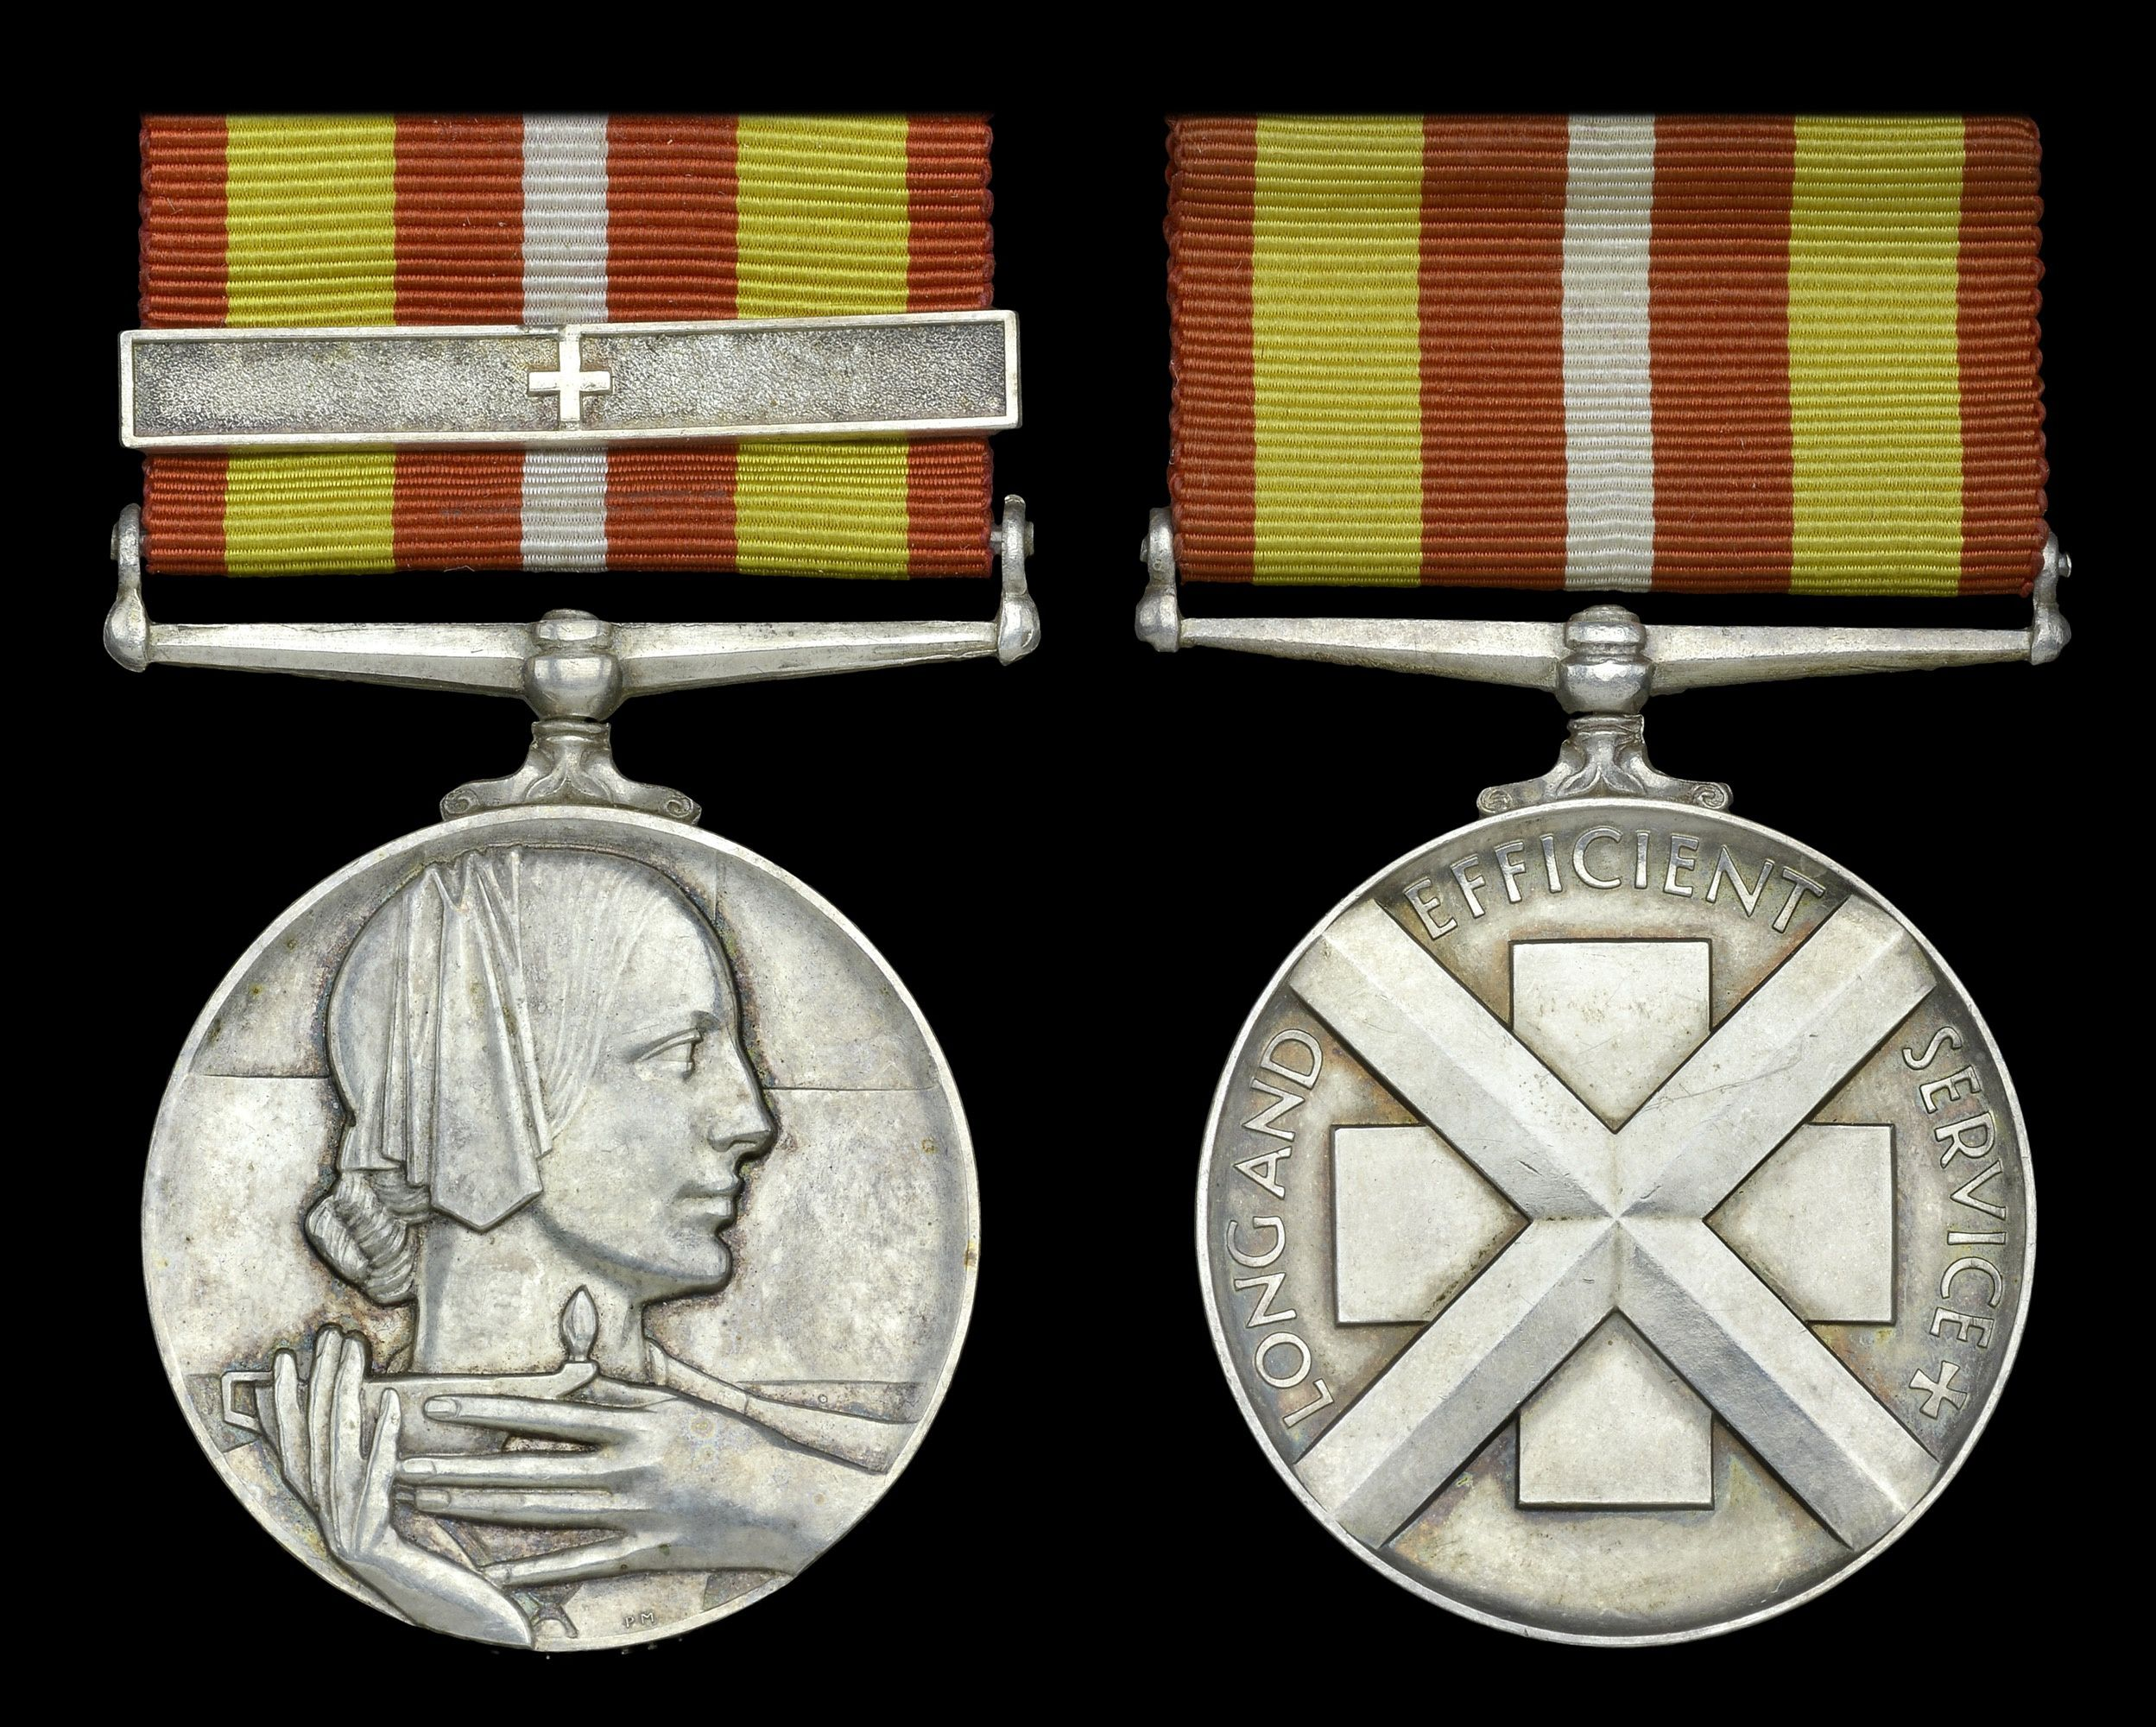 UK Voluntary Medical Service Medal, silver, (Miss Mary